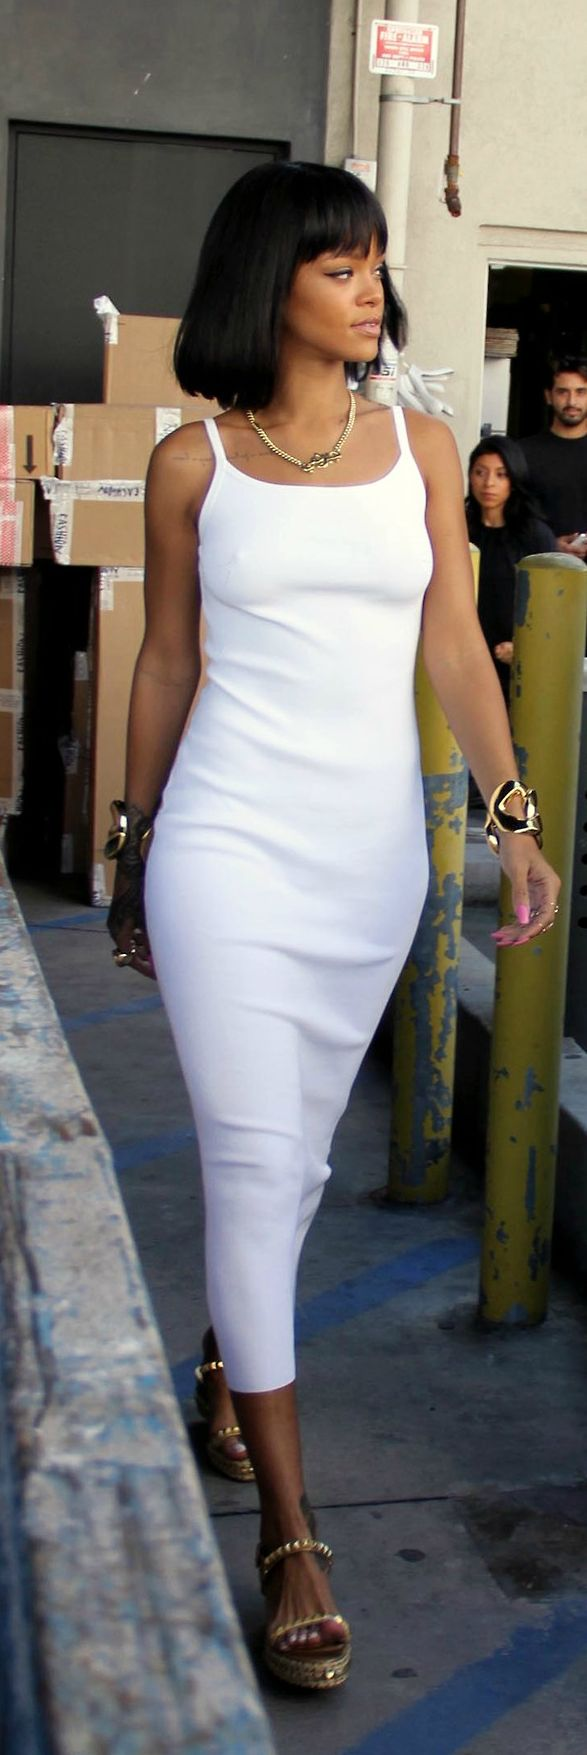 mequetrefismos-total-white-branco-party-girl-rihanna